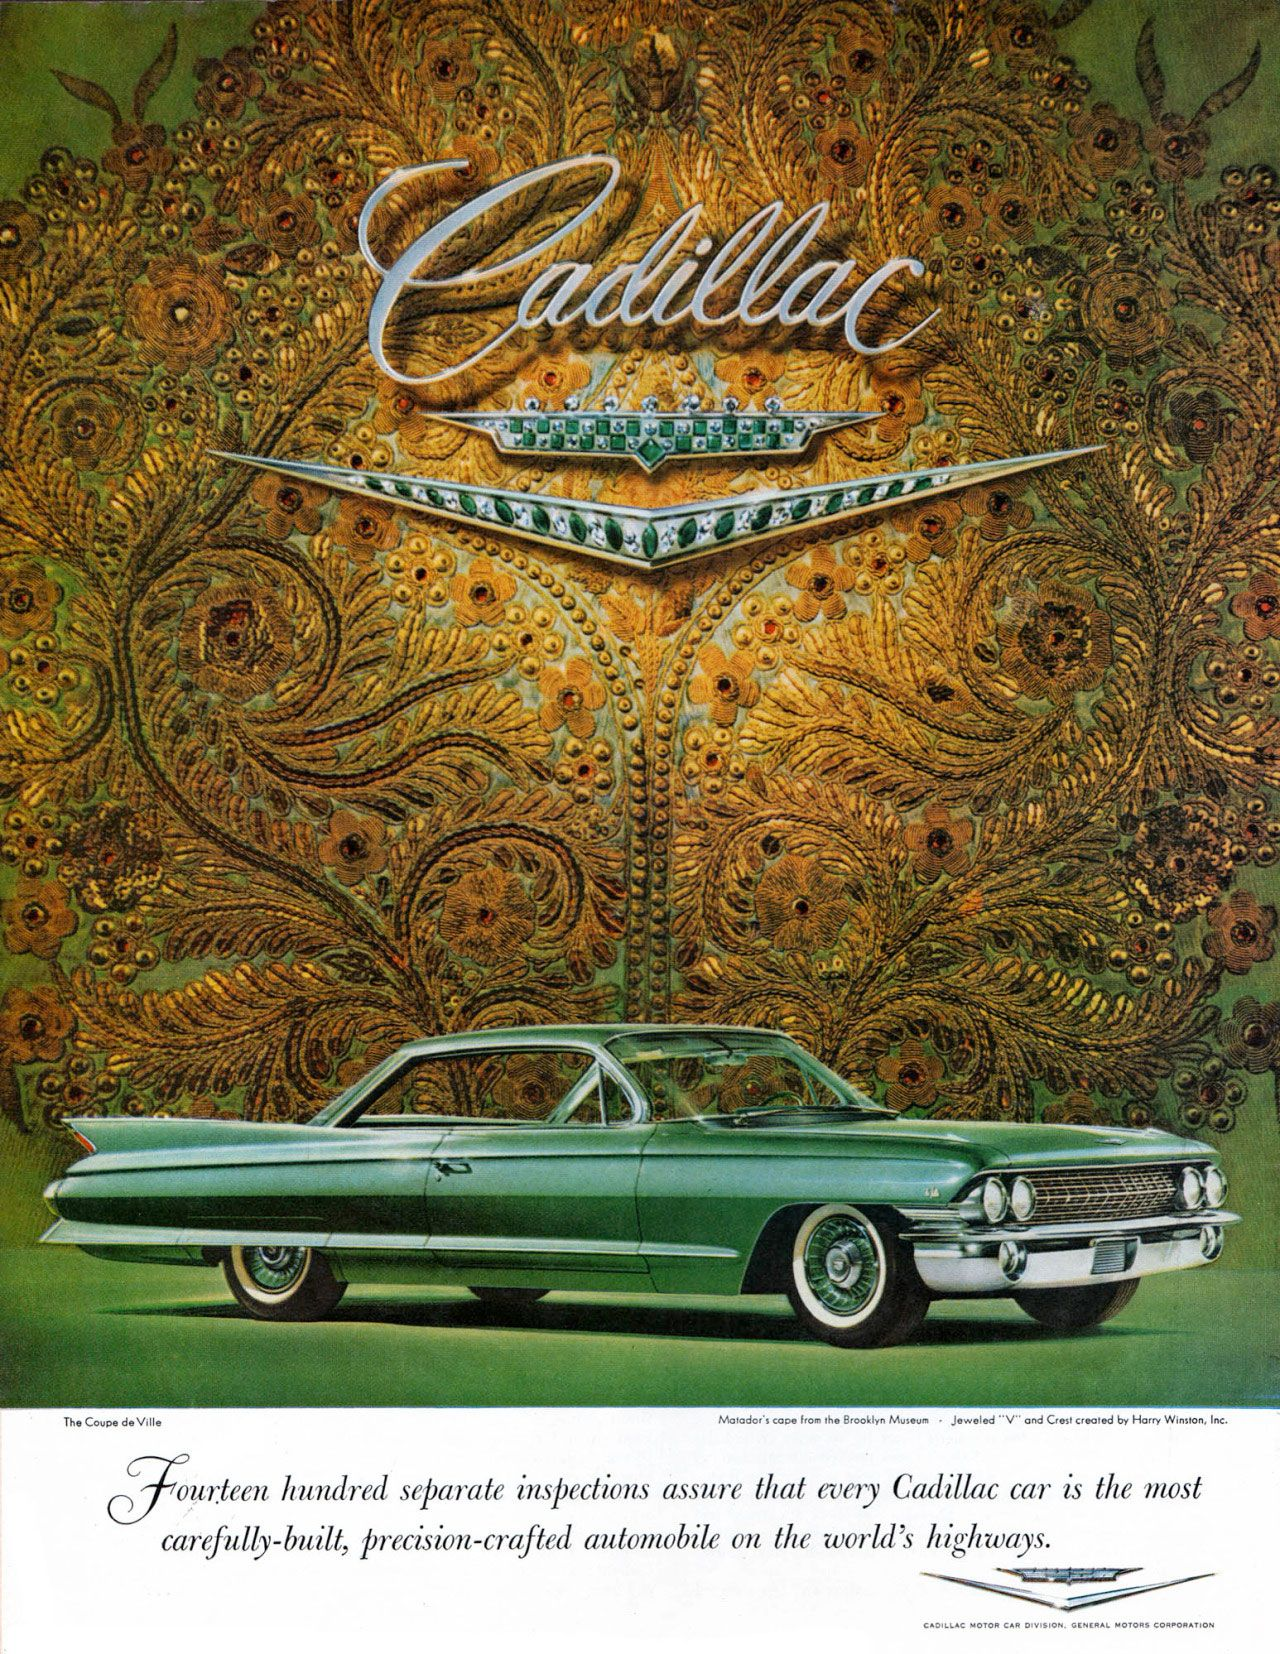 Fourteen hundred separate inspections assure that every Cadillac car is the most carefully-built, precision-crafted automobile on the world's highways.